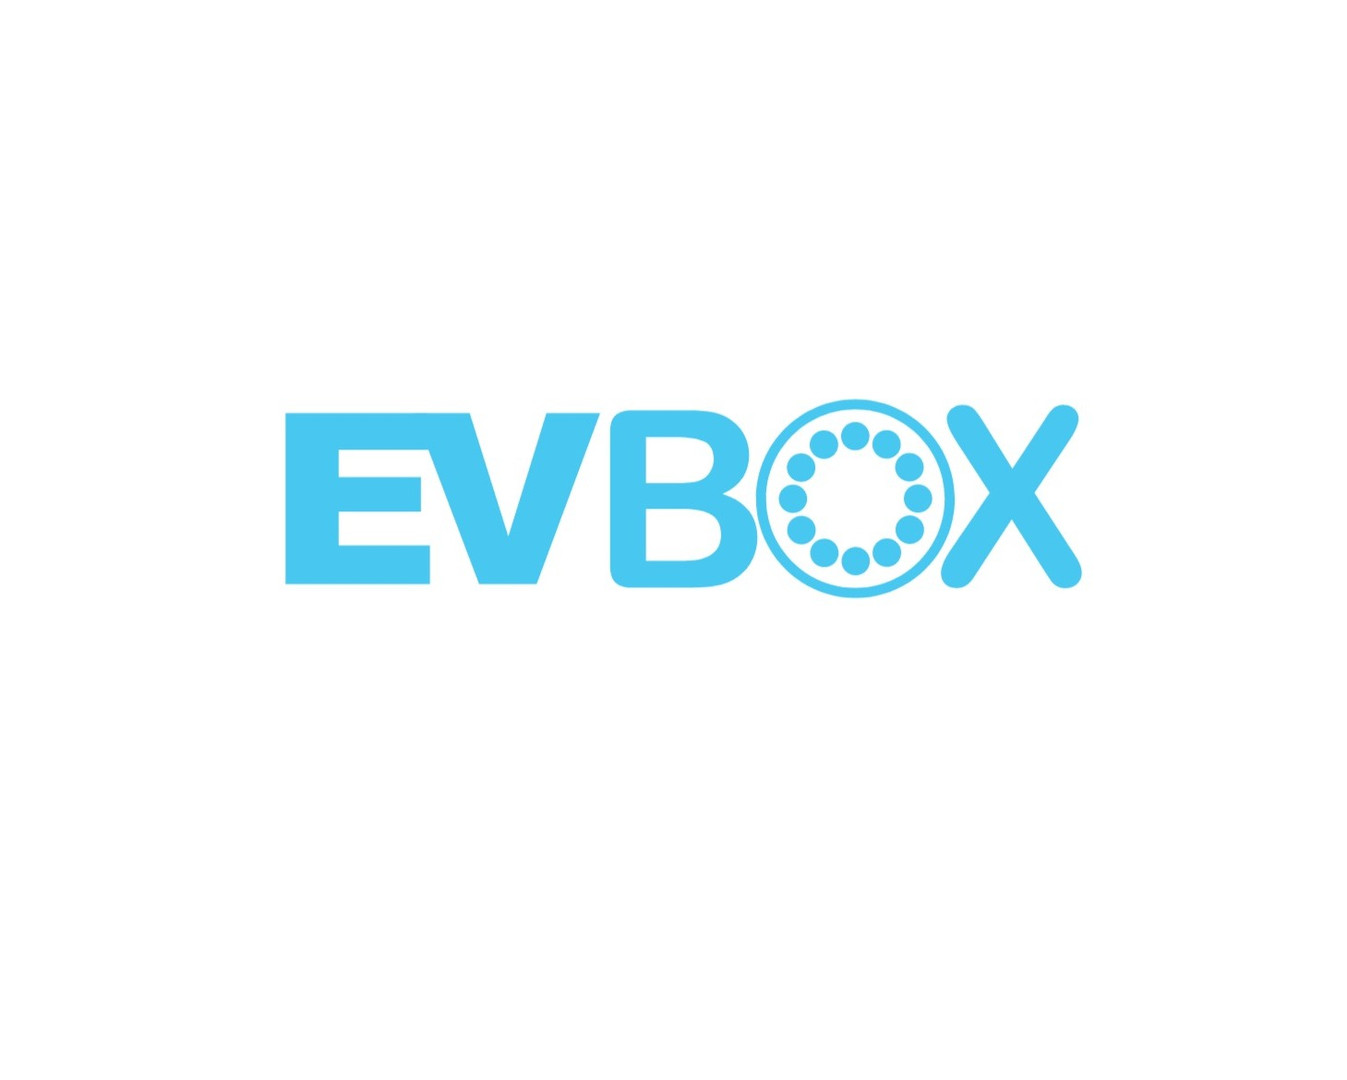 evbox-logo-vector_01_edited_edited.jpg